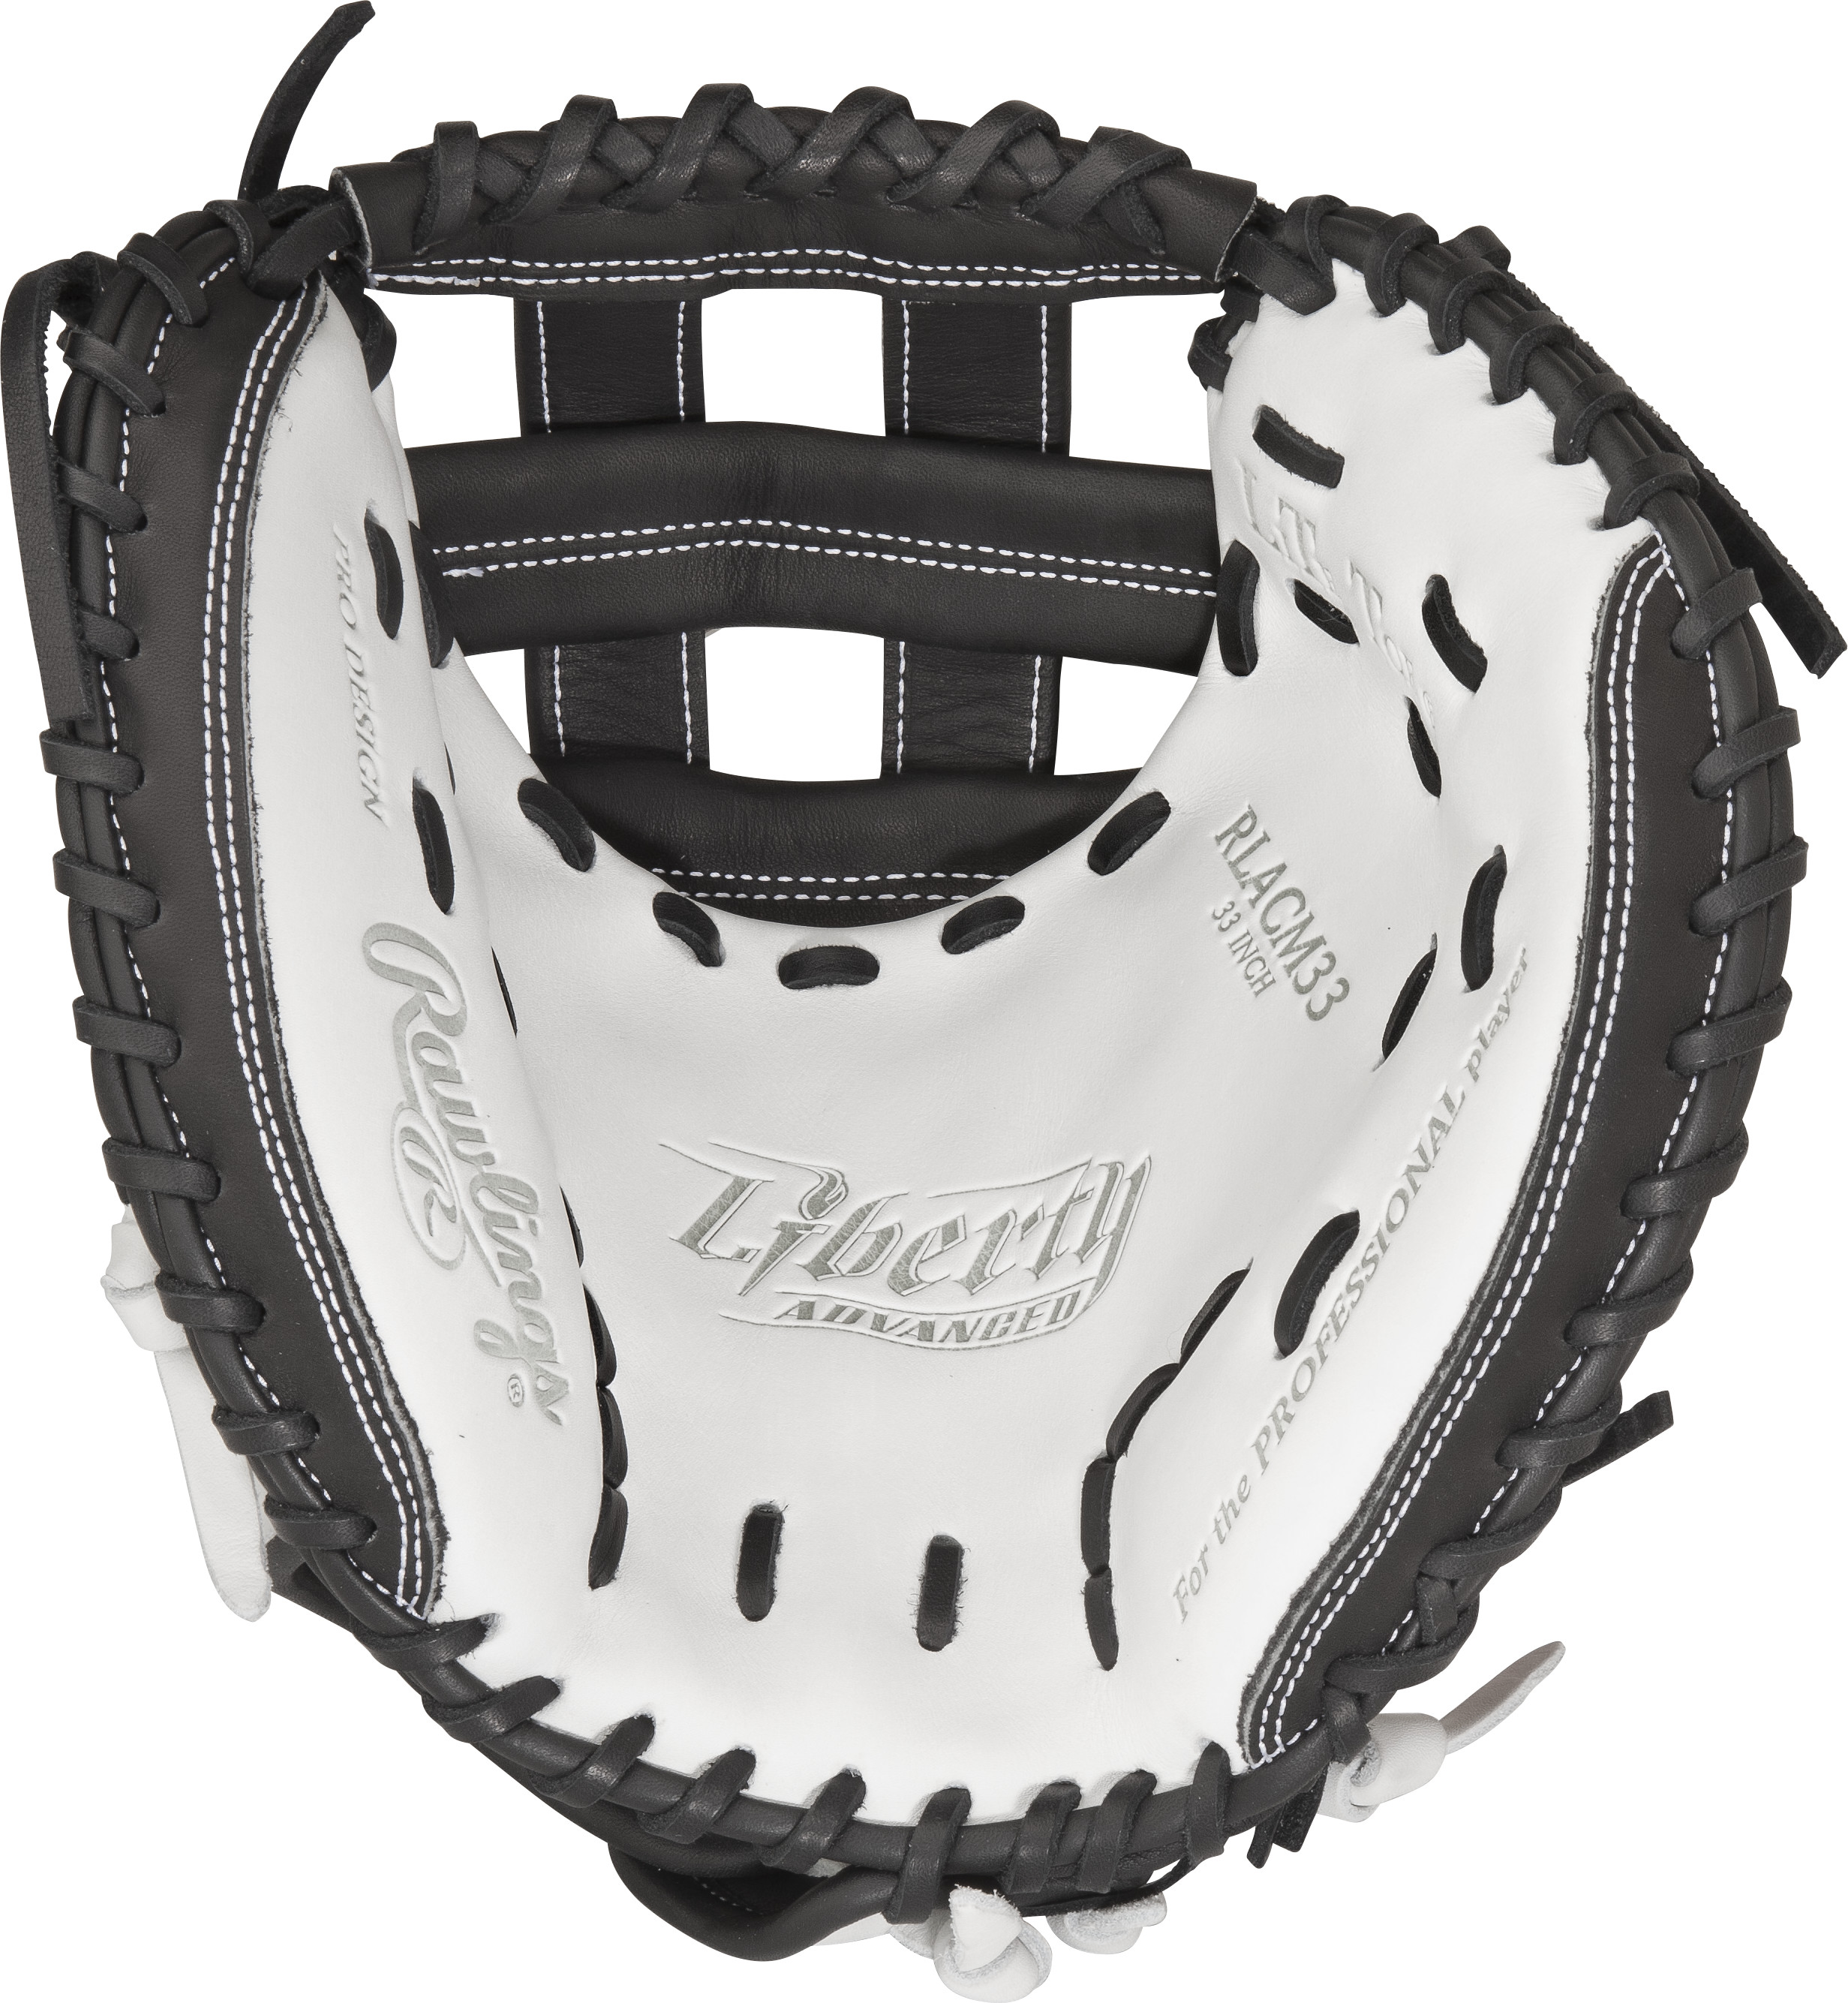 http://www.bestbatdeals.com/images/gloves/rawlings/RLACM33_palm.jpg